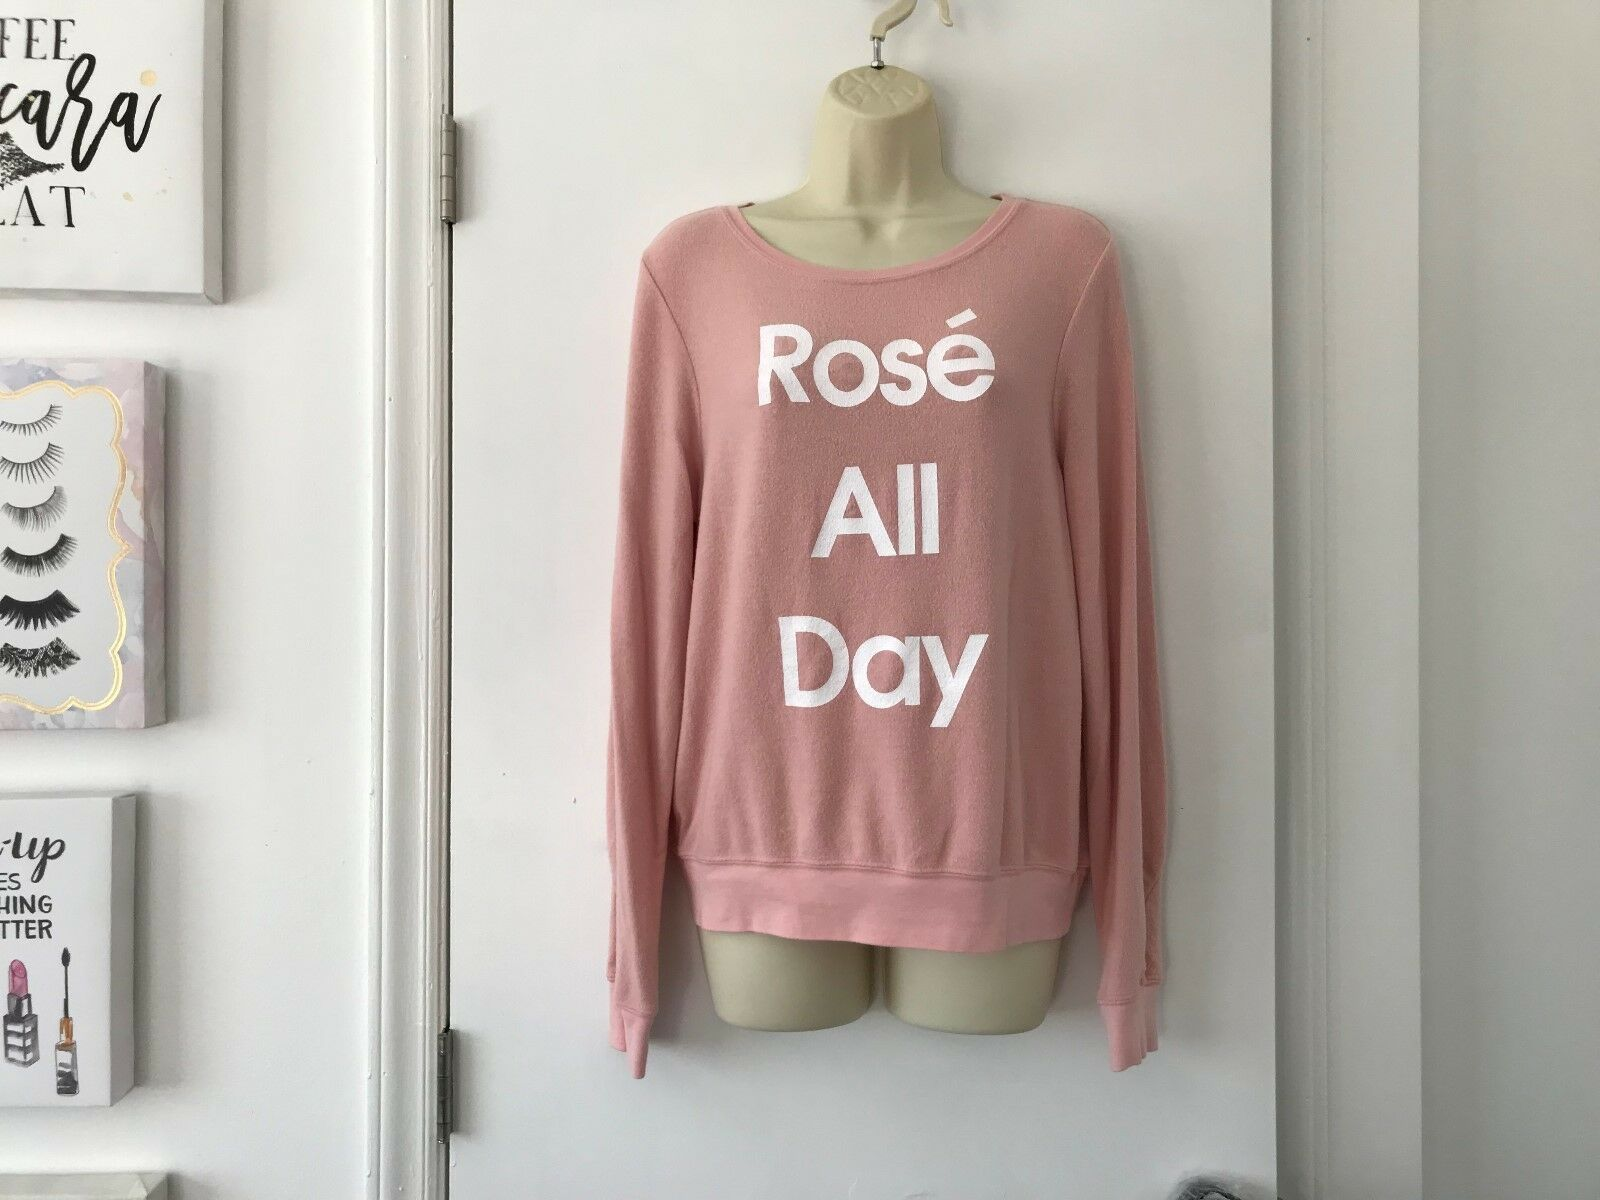 Wildfox Pink pink All Day BBJ Baggy Beach Jumper Sweater Sweatshirt X-Small XS